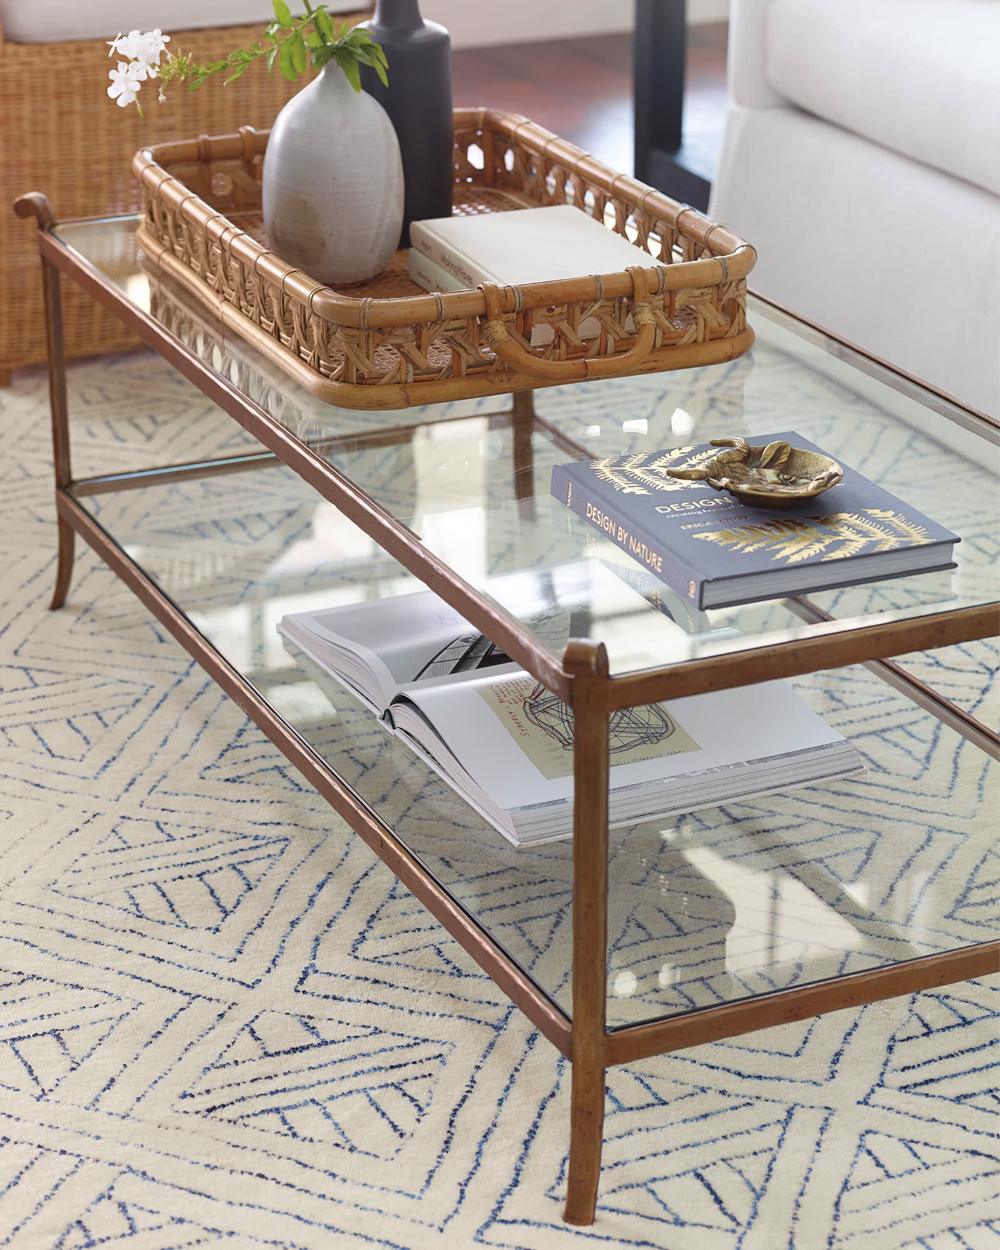 Lakeview Rug In 2021 Coffee Table Glass Coffee Table Coffee Table With Storage [ 1250 x 1000 Pixel ]